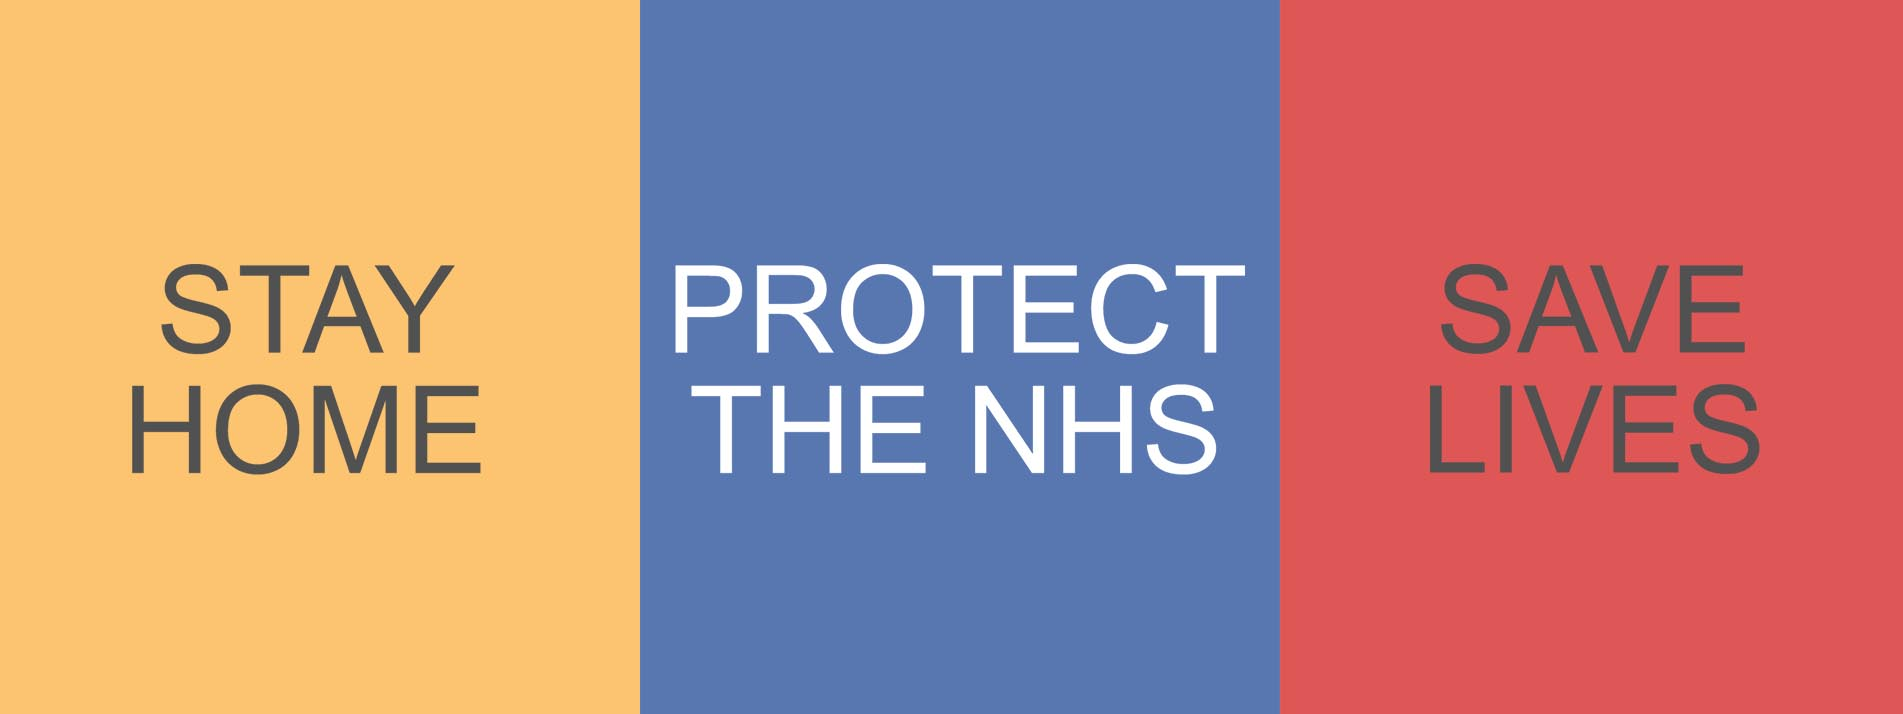 stay-home-protect-the-nhs-save-lives-m-sli